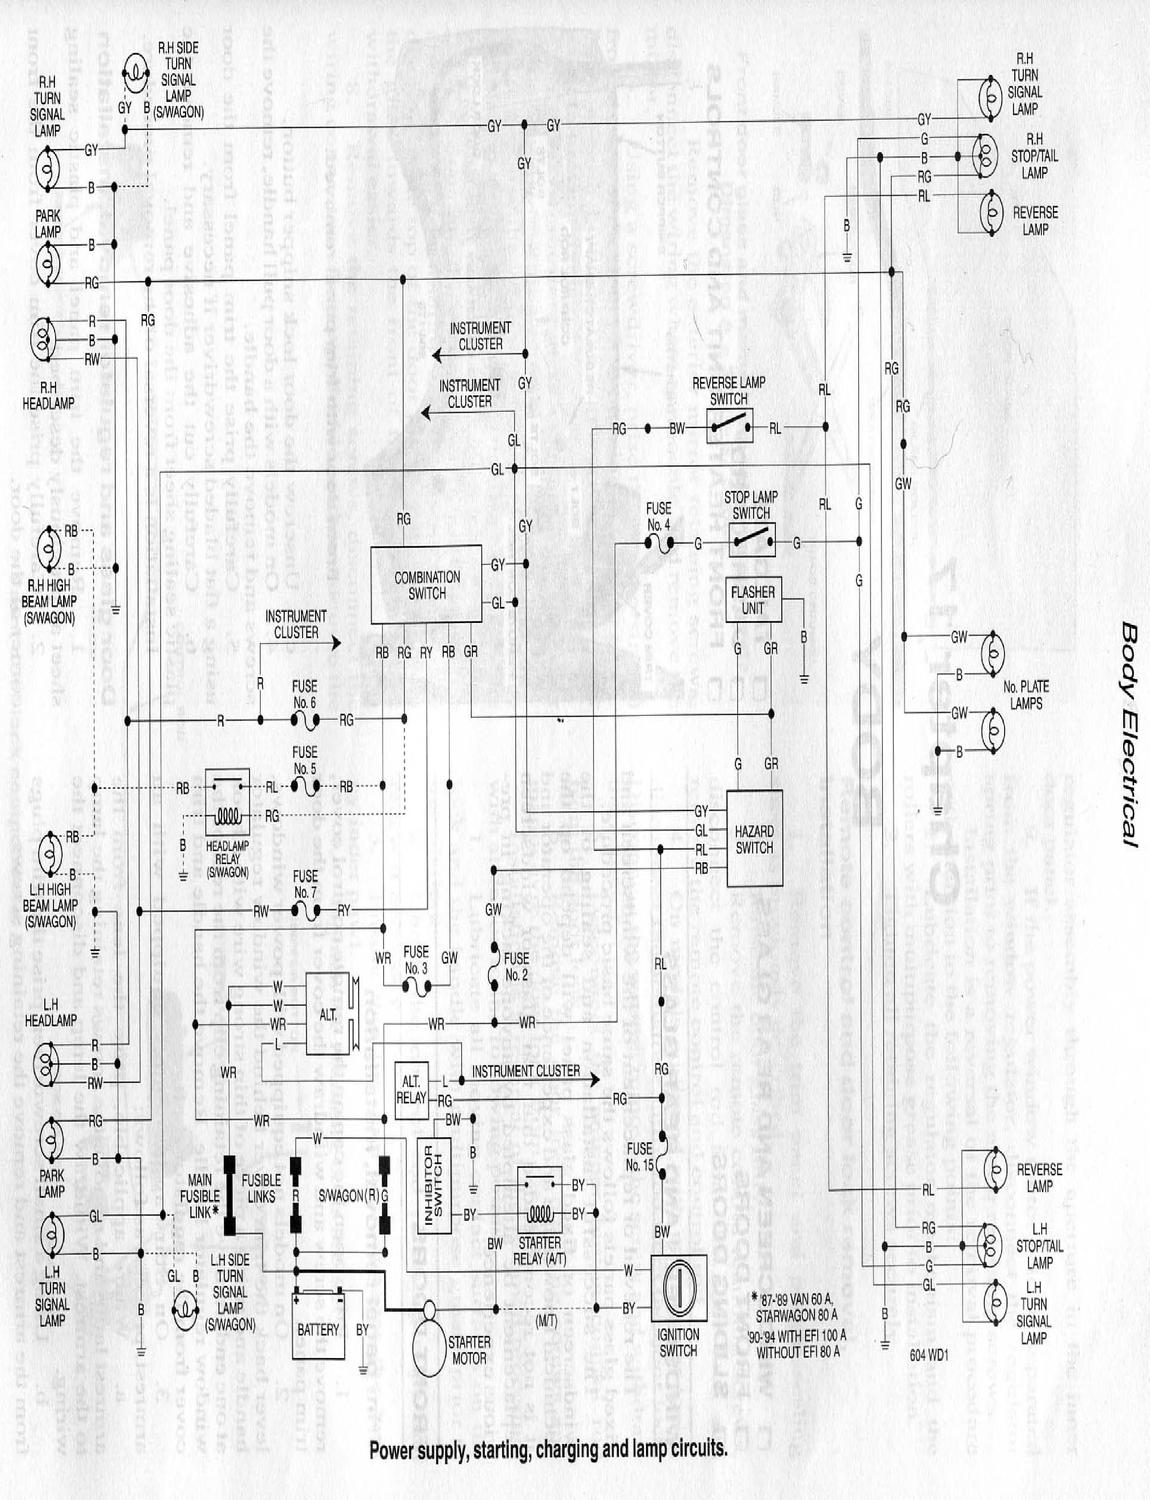 hight resolution of mitsubishi l300 wiring diagram wiring library mitsubishi 4m40 engine timing mitsubishi l300 heater wiring diagram